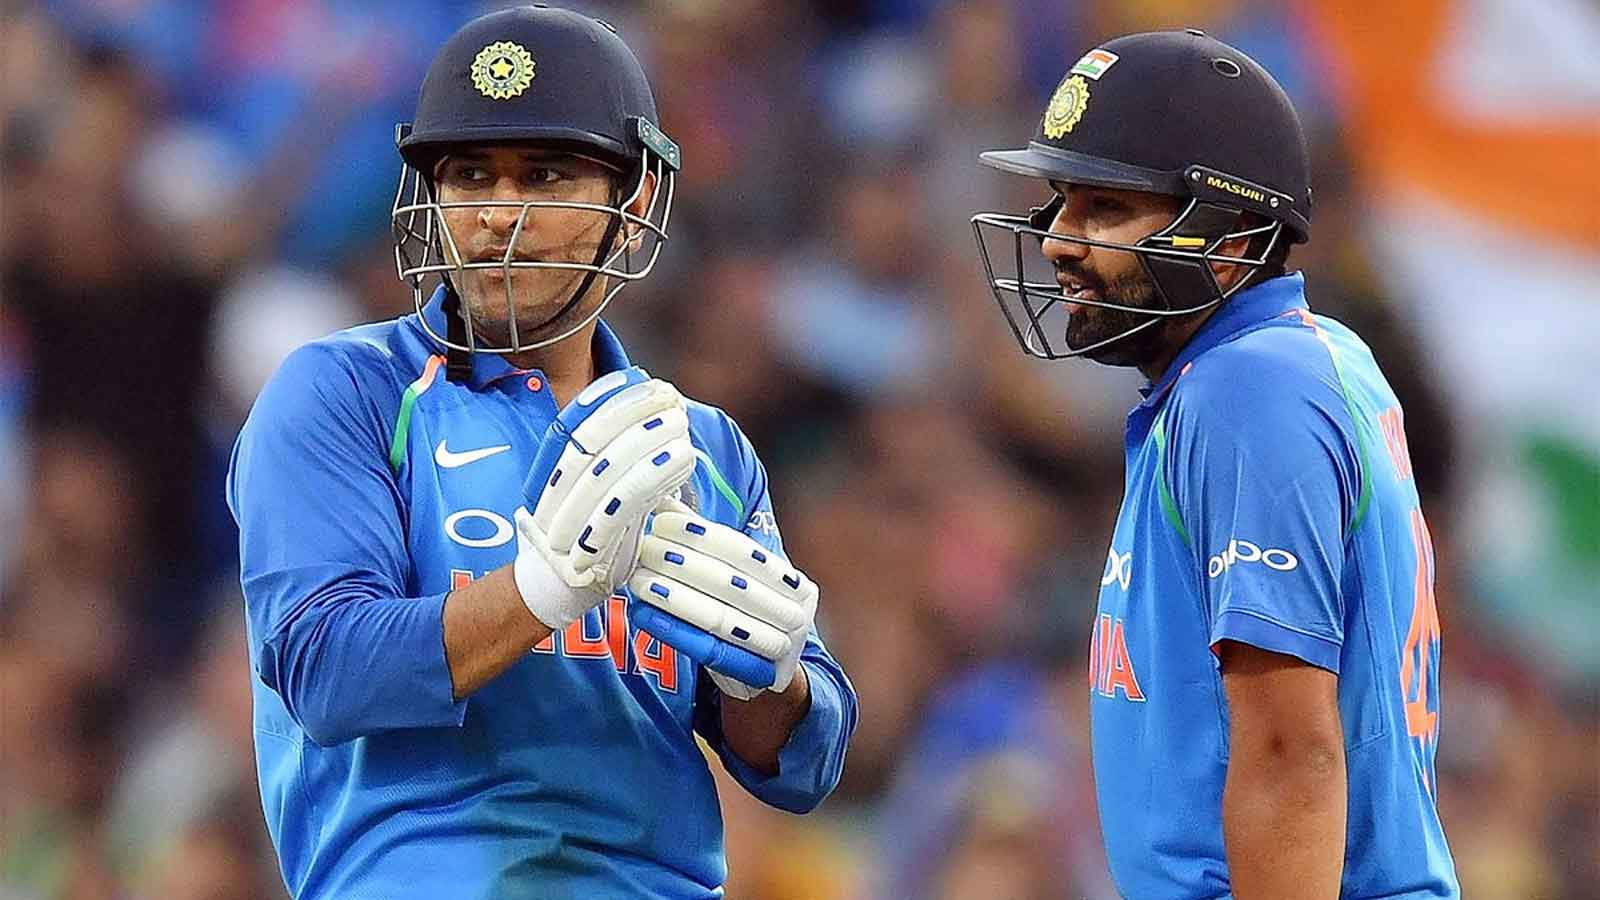 ms-dhoni-is-one-of-a-kind-says-rohit-sharma-on-comparisons-with-former-team-india-captain